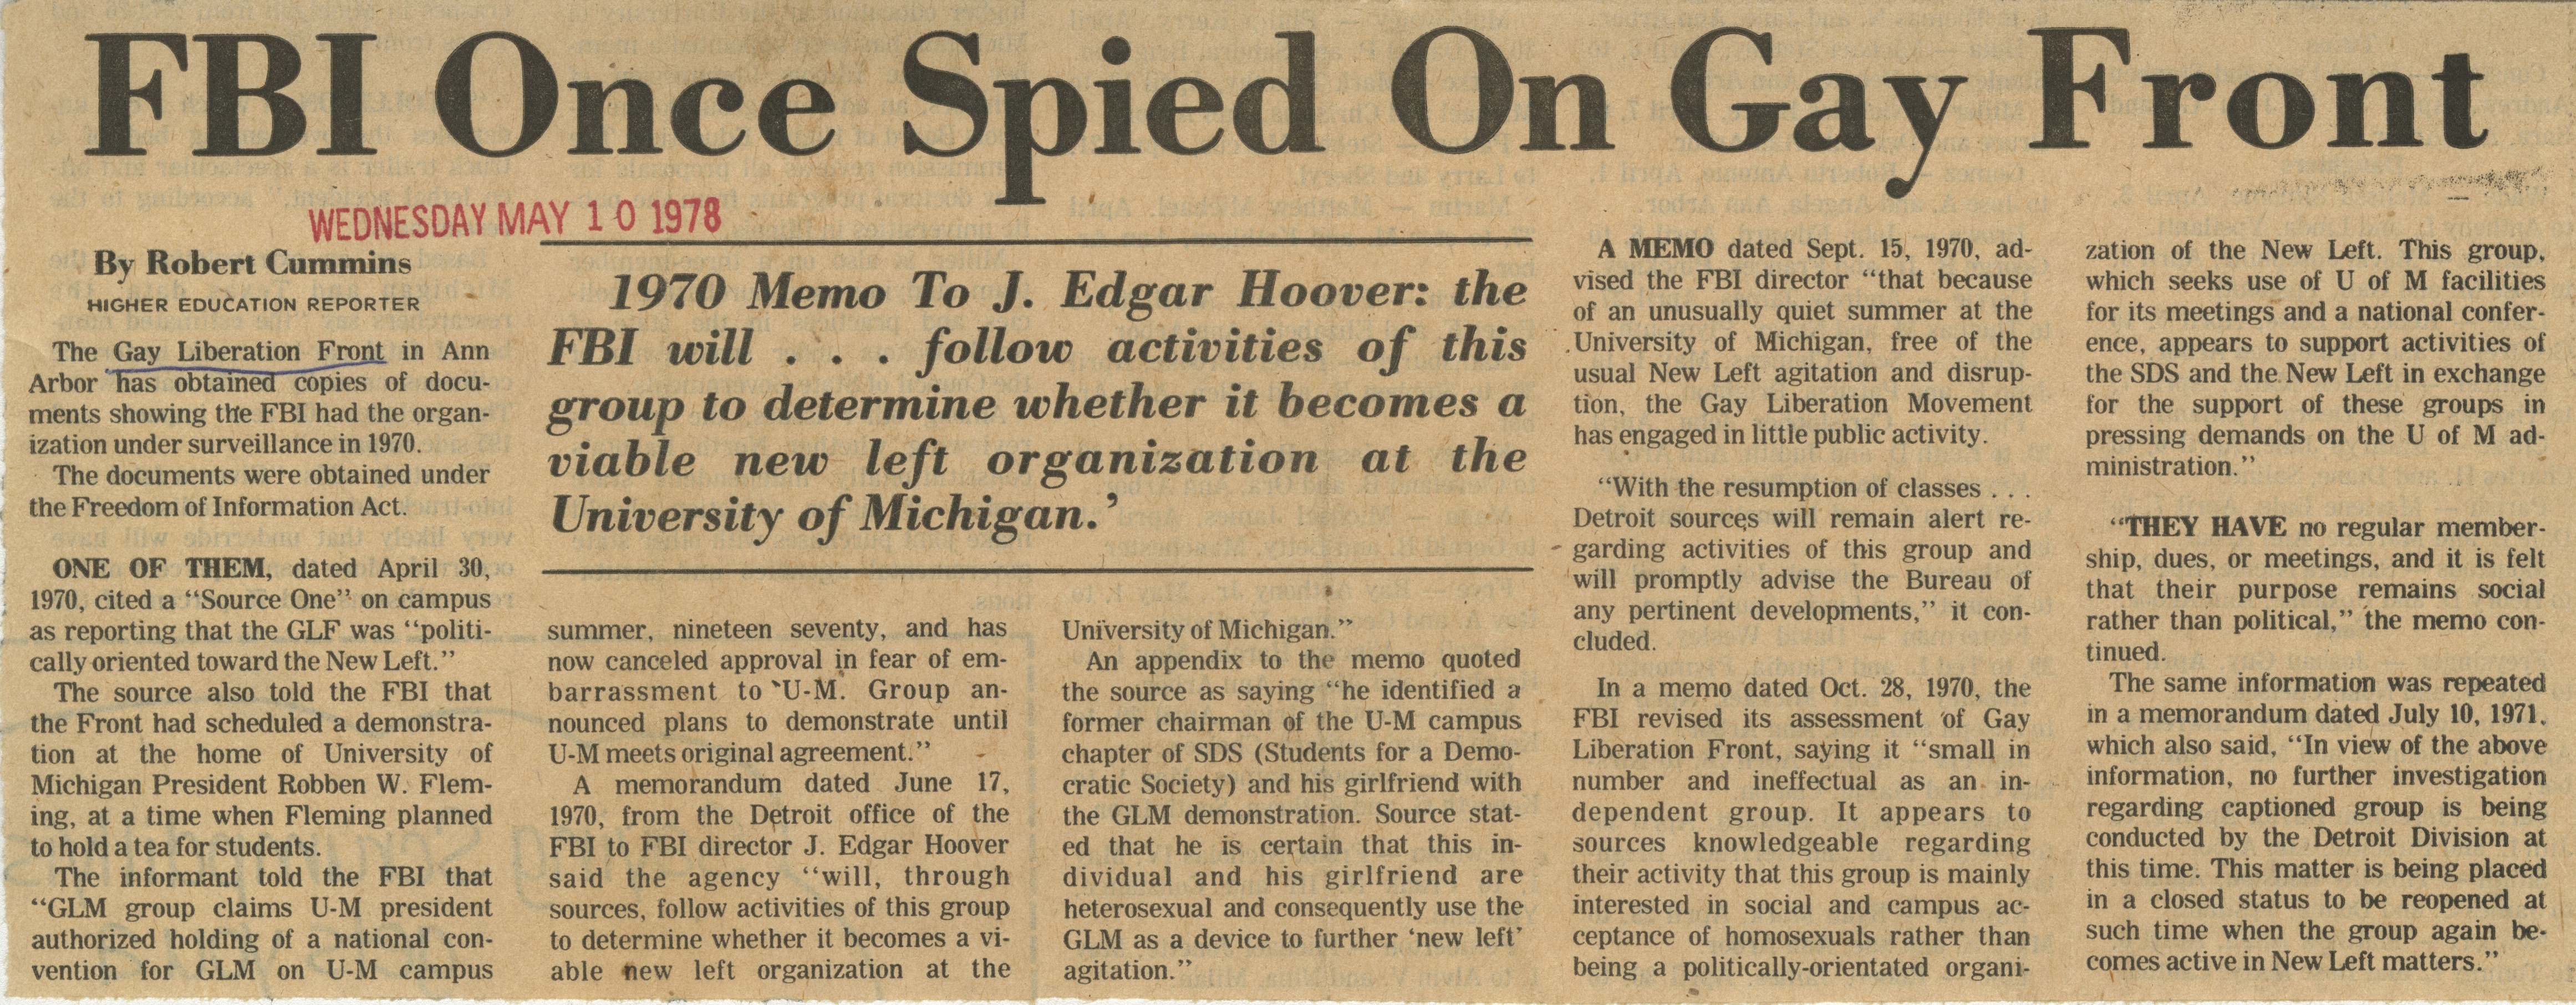 FBI Once Spied On Gay Front image